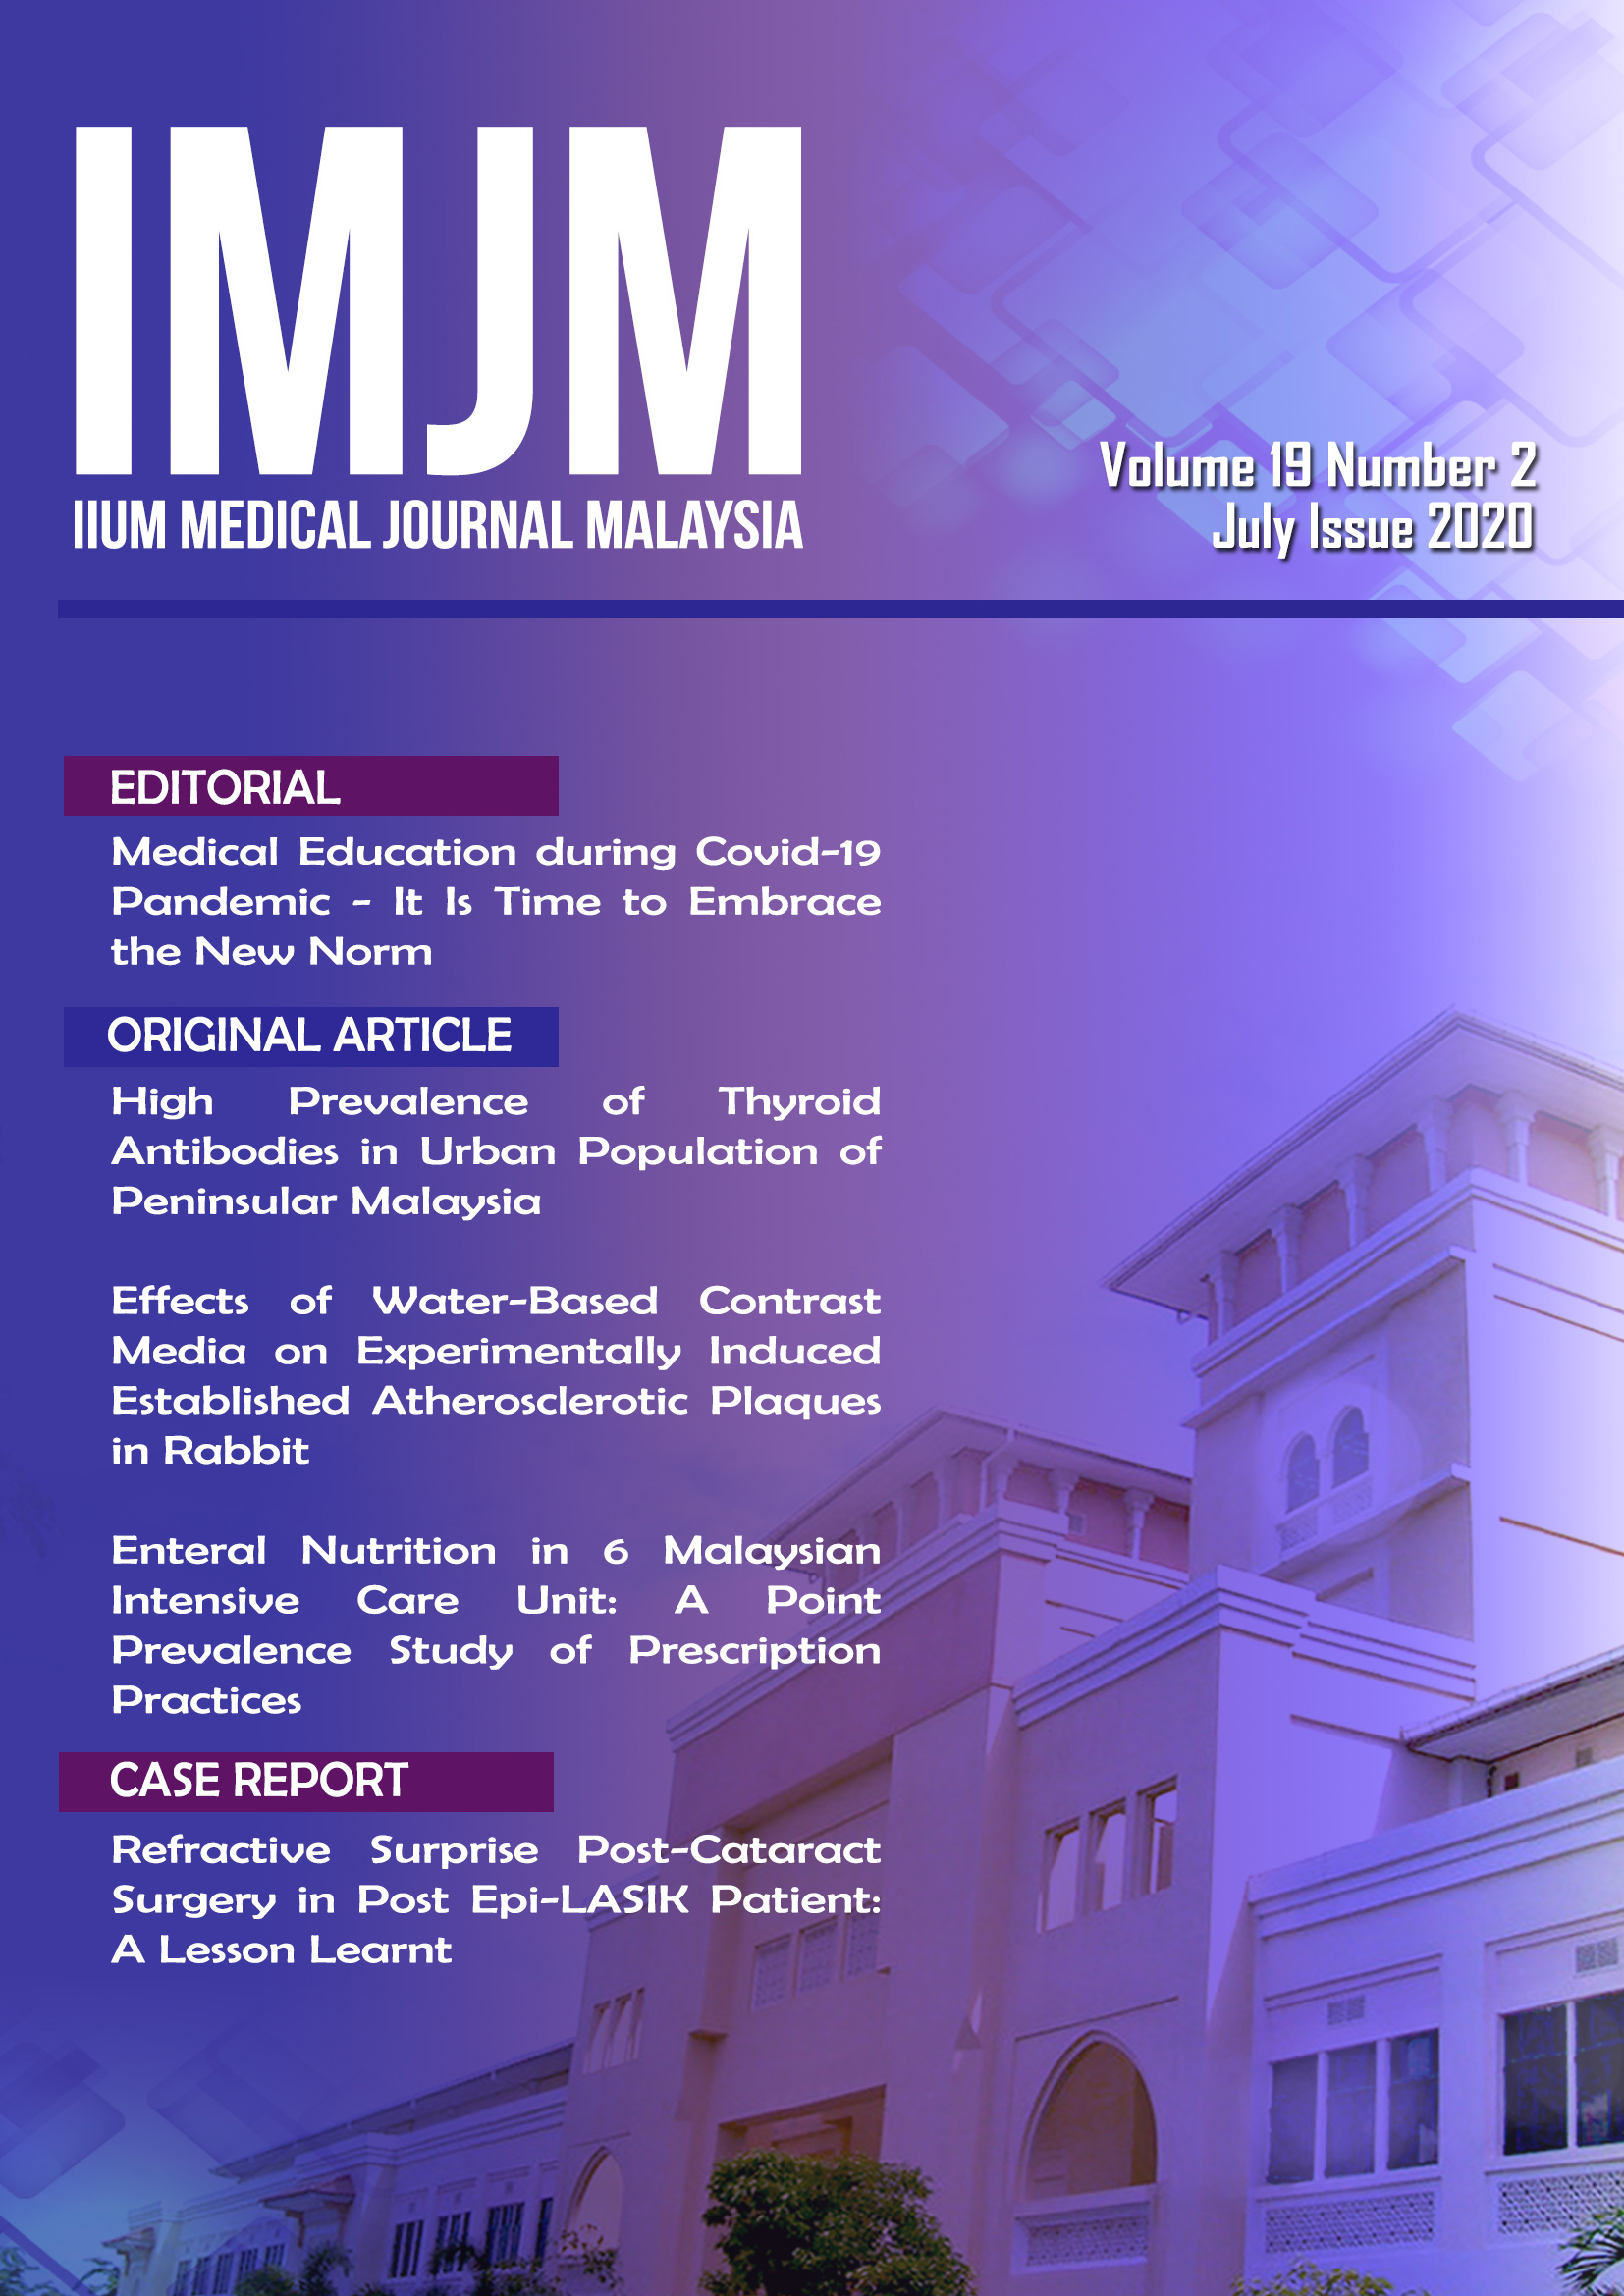 View Vol. 19 No. 2 (2020): IIUM Medical Journal Malaysia - July 2020